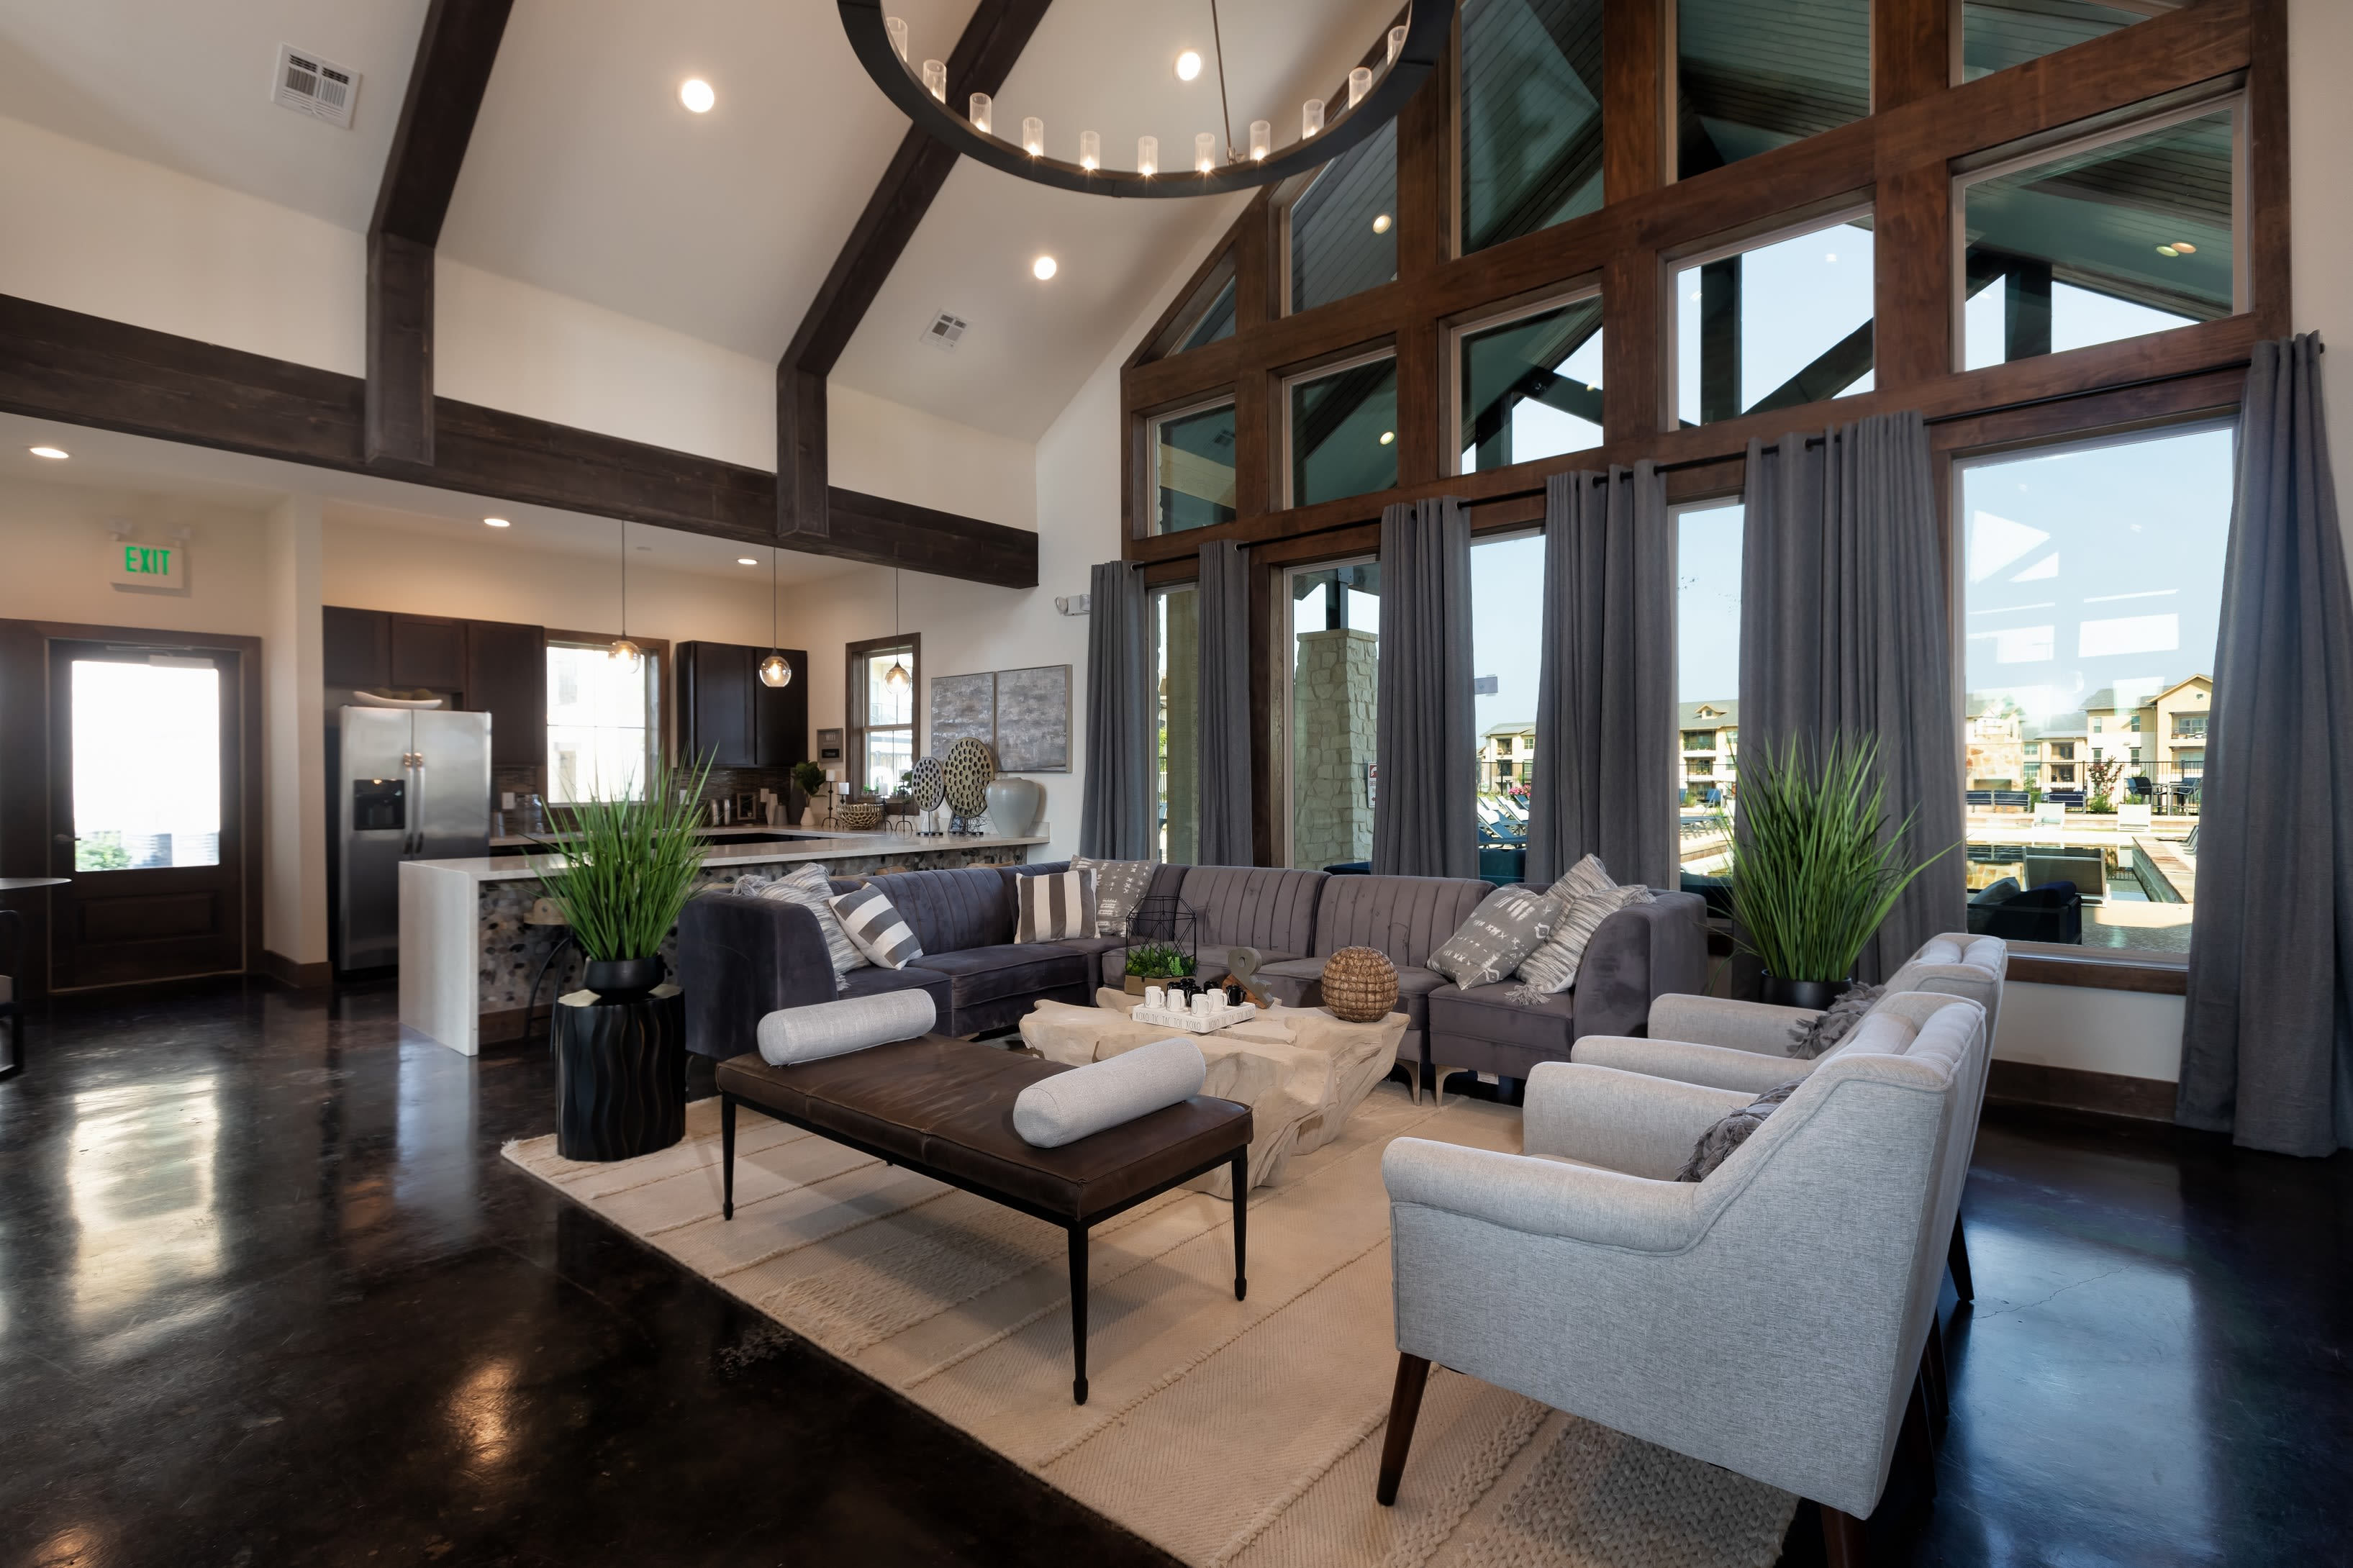 Luxurious resident clubhouse interior at 4 Corners Apartments in Frisco, Texas